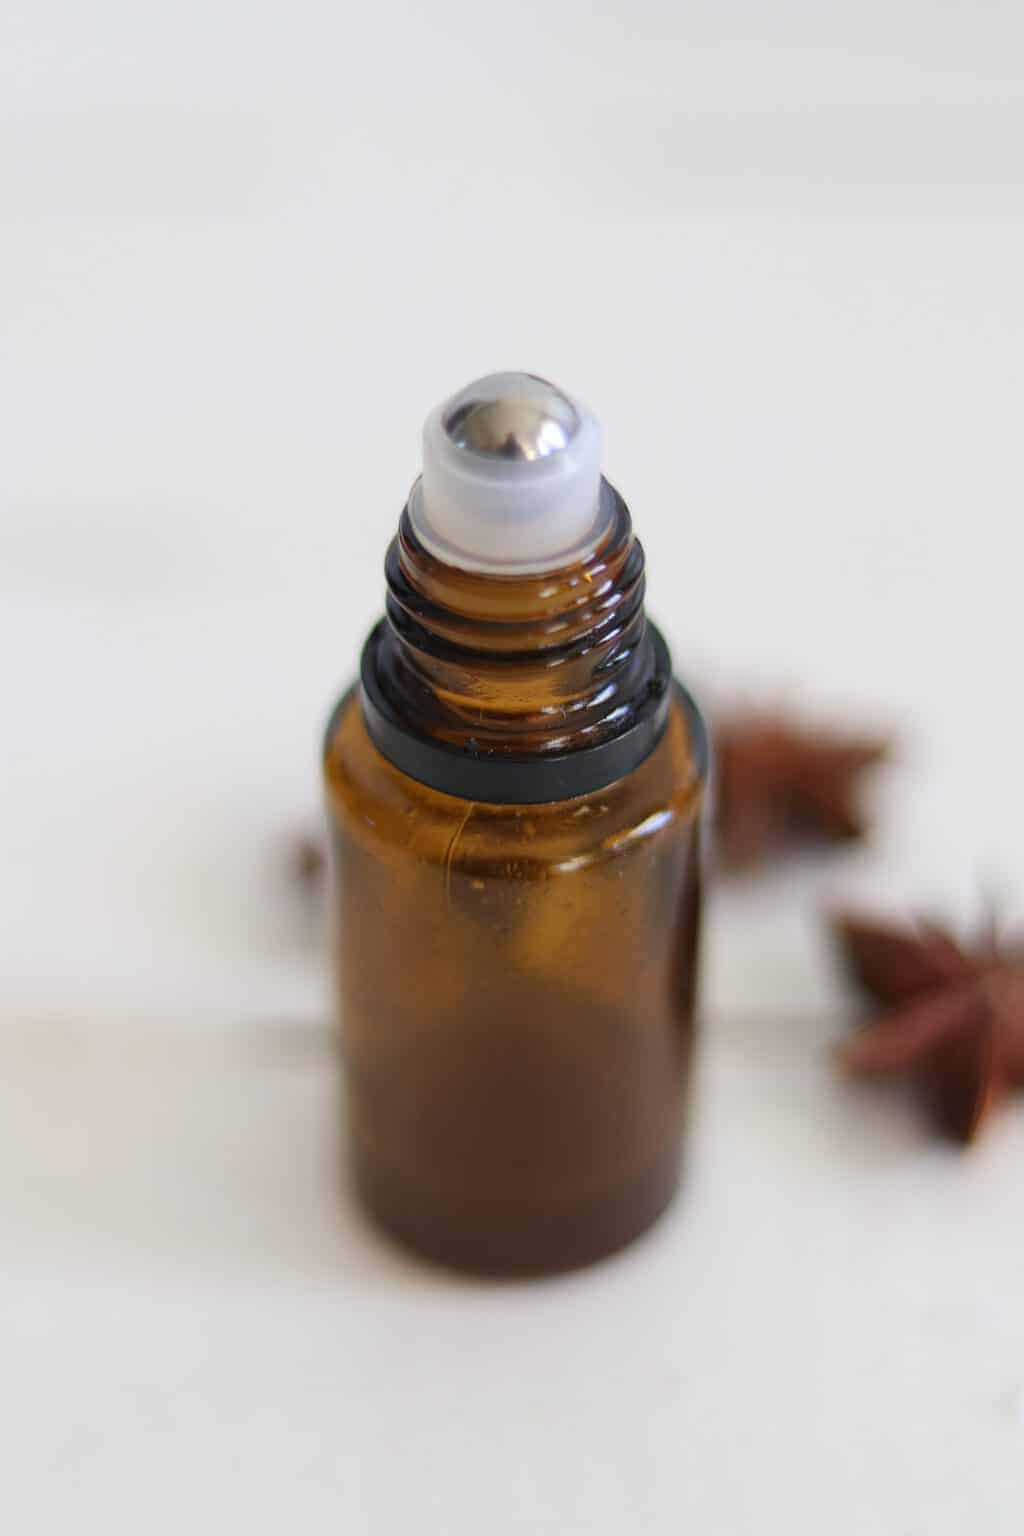 Make your favorite essential oil blend in an empty 15mL essential oil bottle by adding this inexpensive roller ball top. It can fit directly on a 5mL or 15mL bottle.